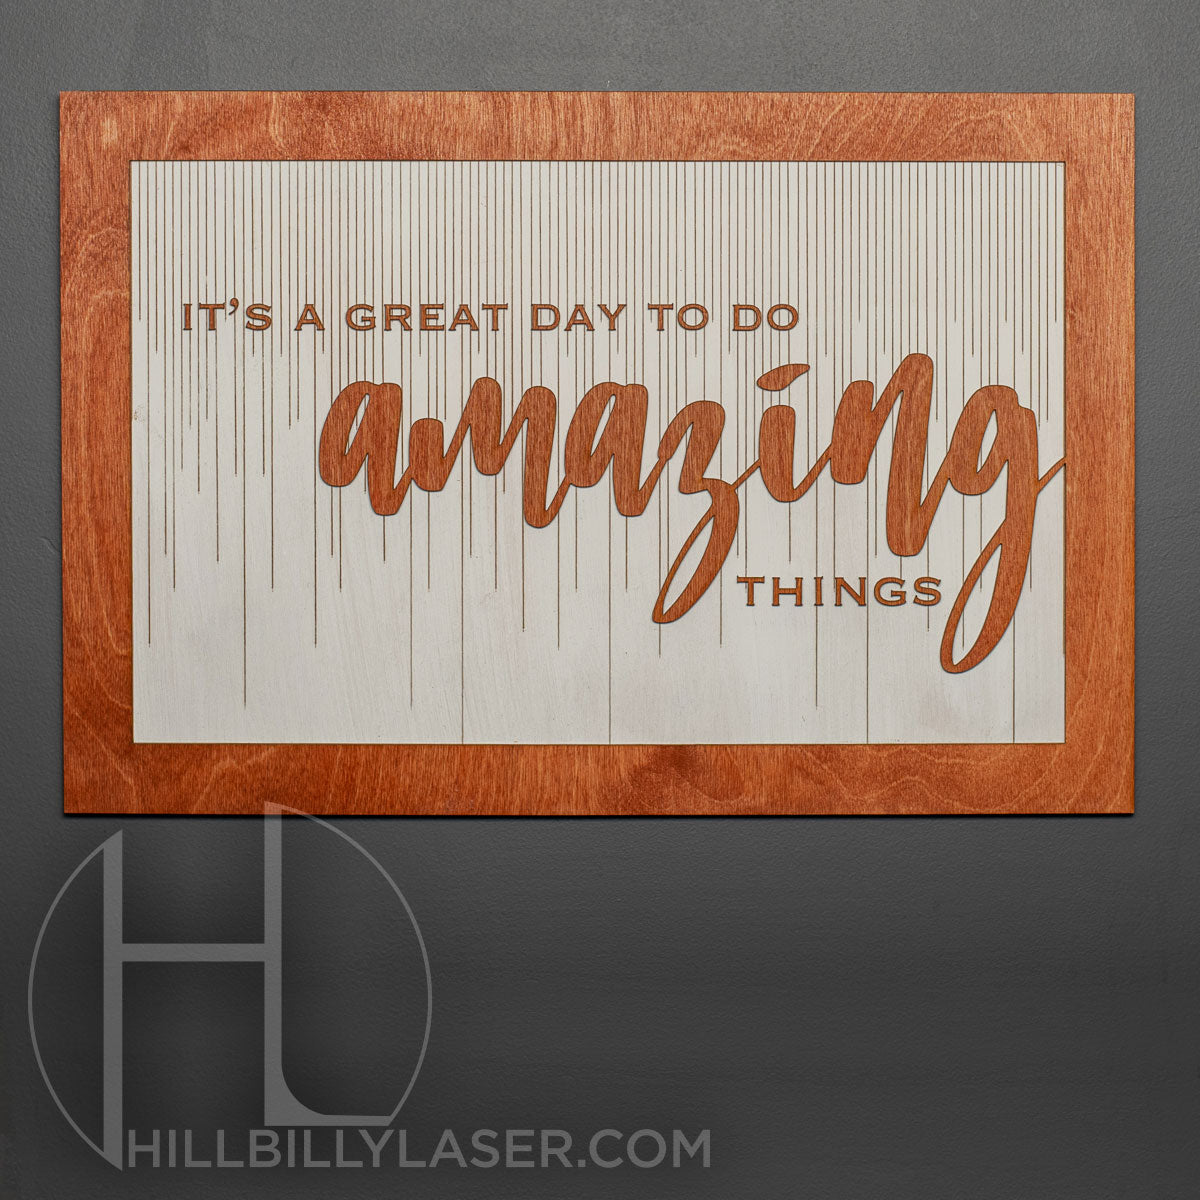 Do Amazing Things - Hillbilly Laser